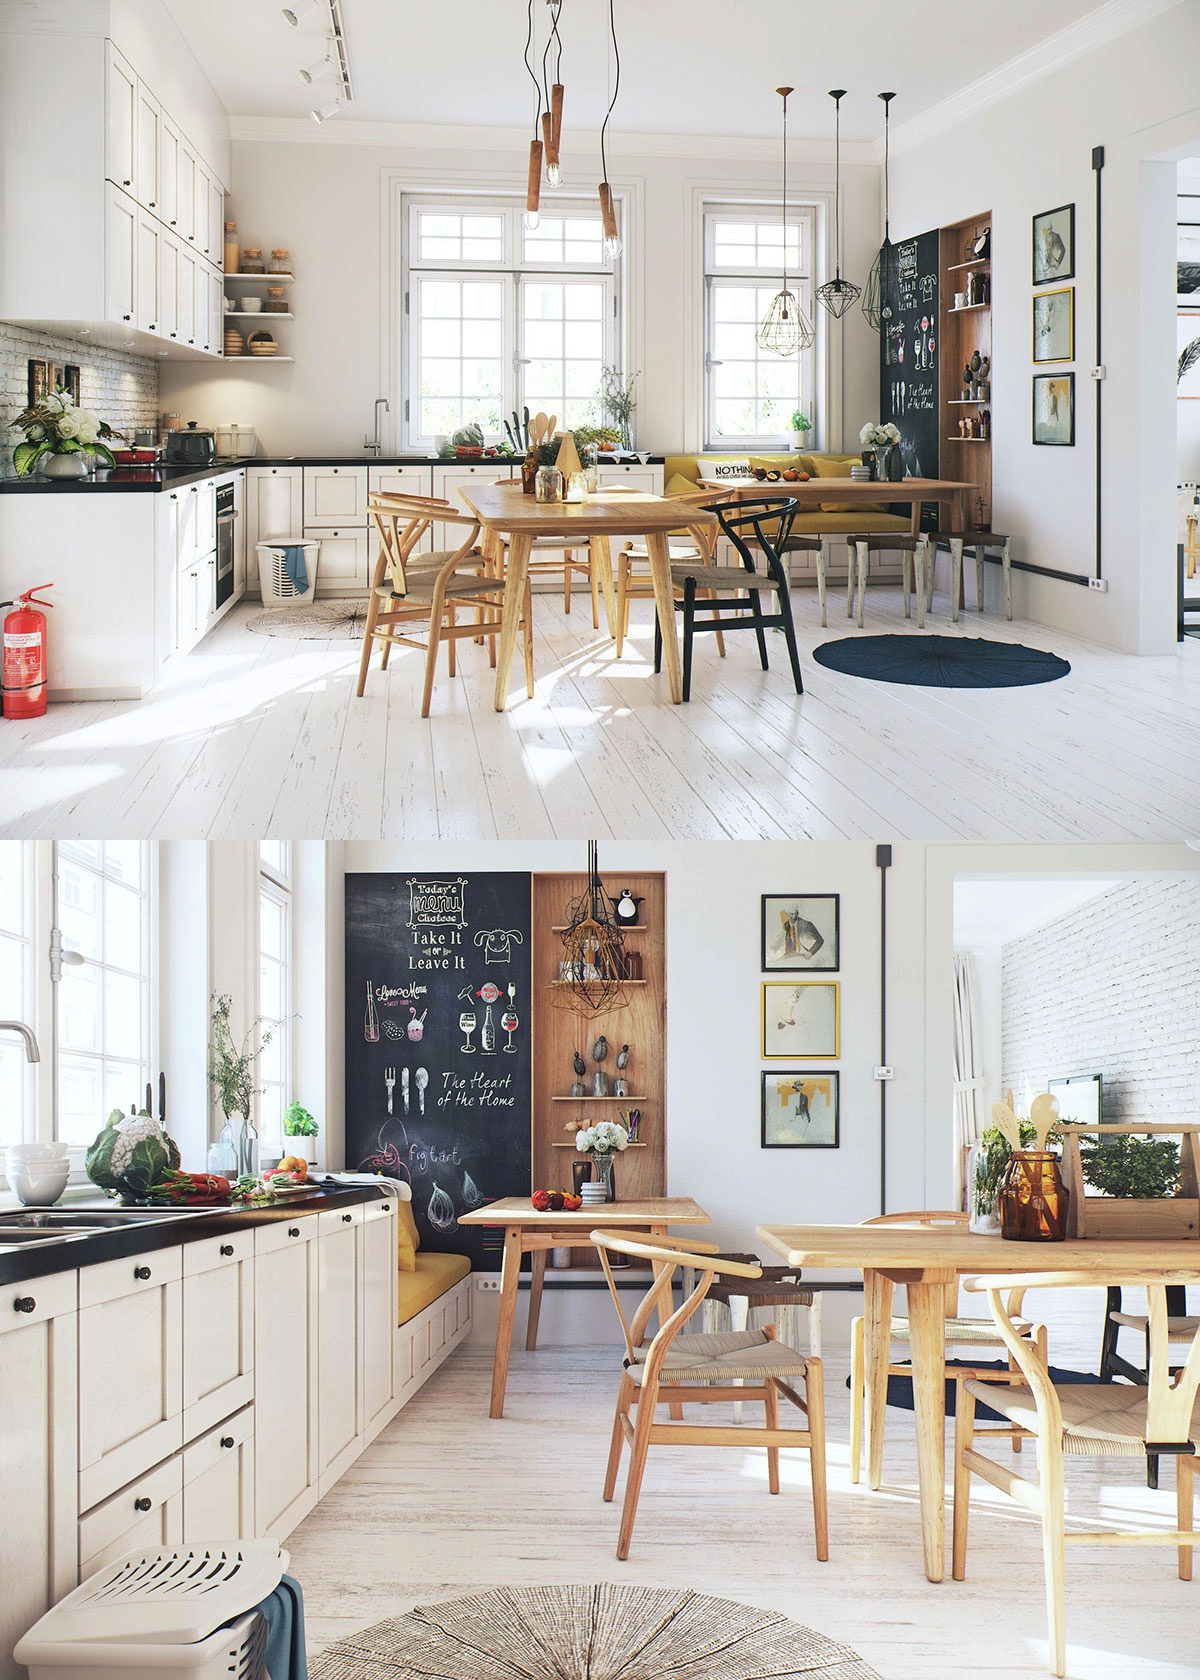 Kitchen Room Interior Design: Scandinavian Dining Room Design: Ideas & Inspiration